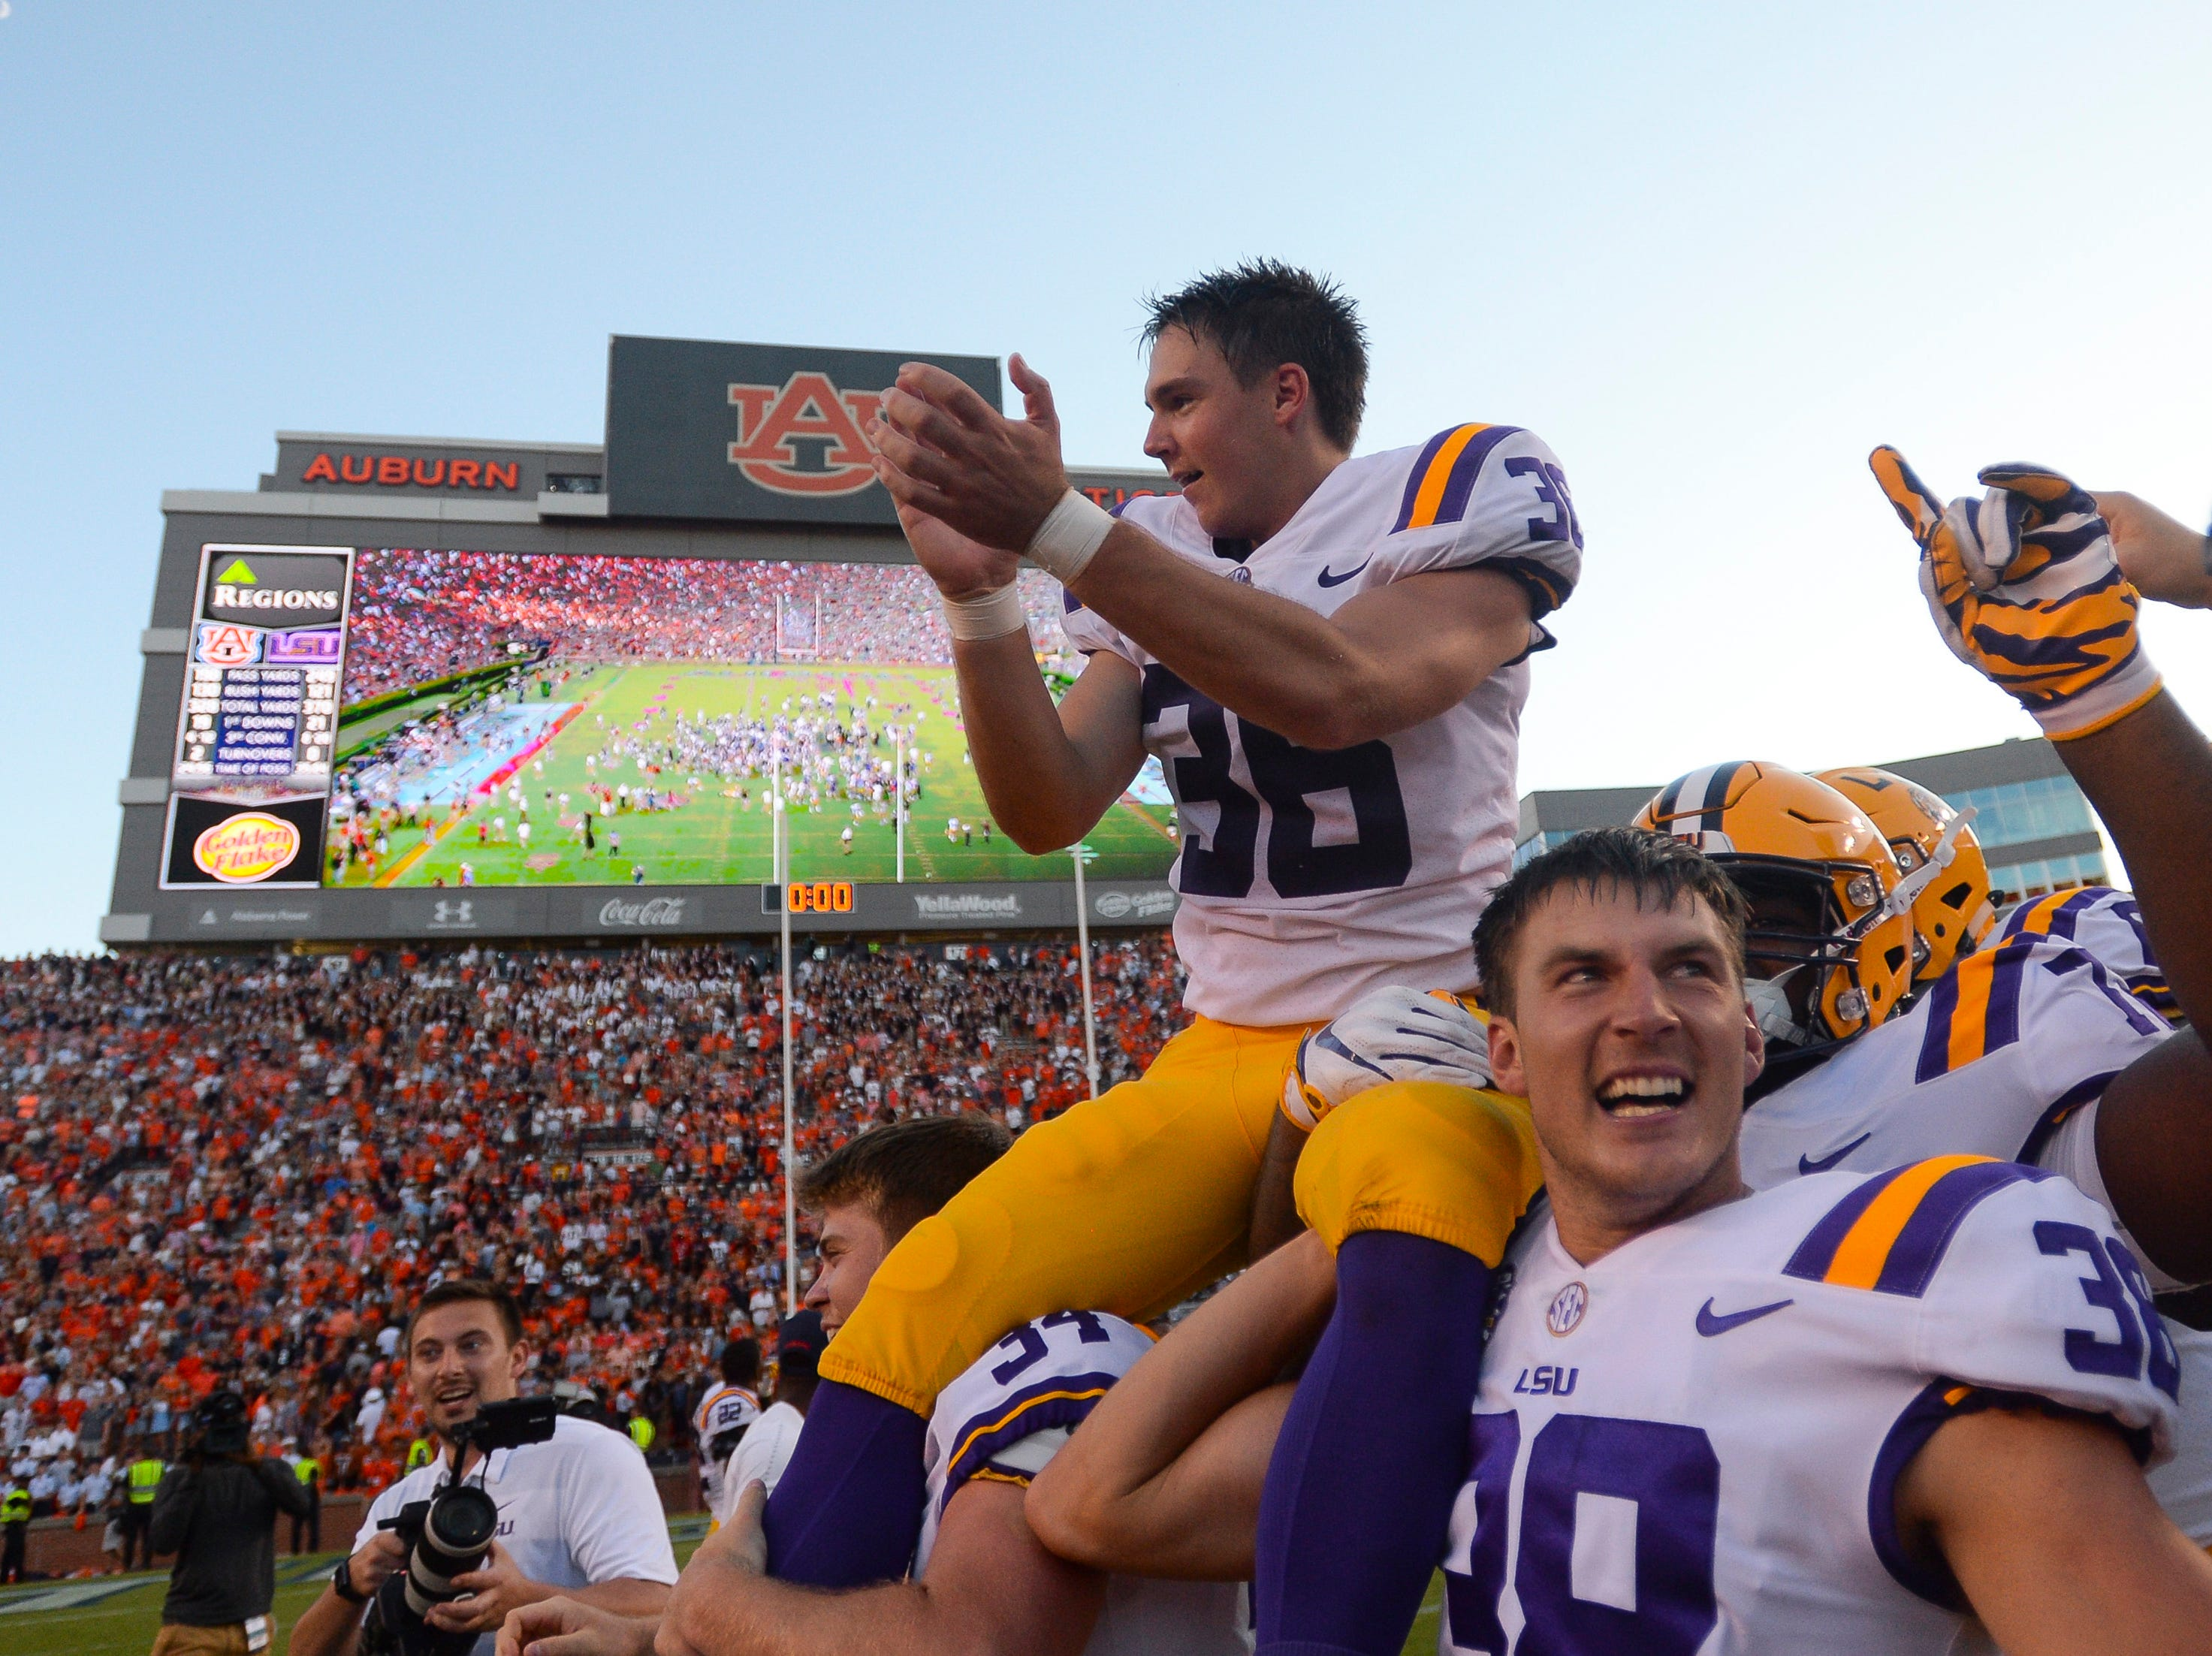 LSU Tigers kicker Cole Tracy (36) celebrates after kicking the game-winning field goal to defeat the Auburn Tigers 22-21 at Jordan-Hare Stadium.